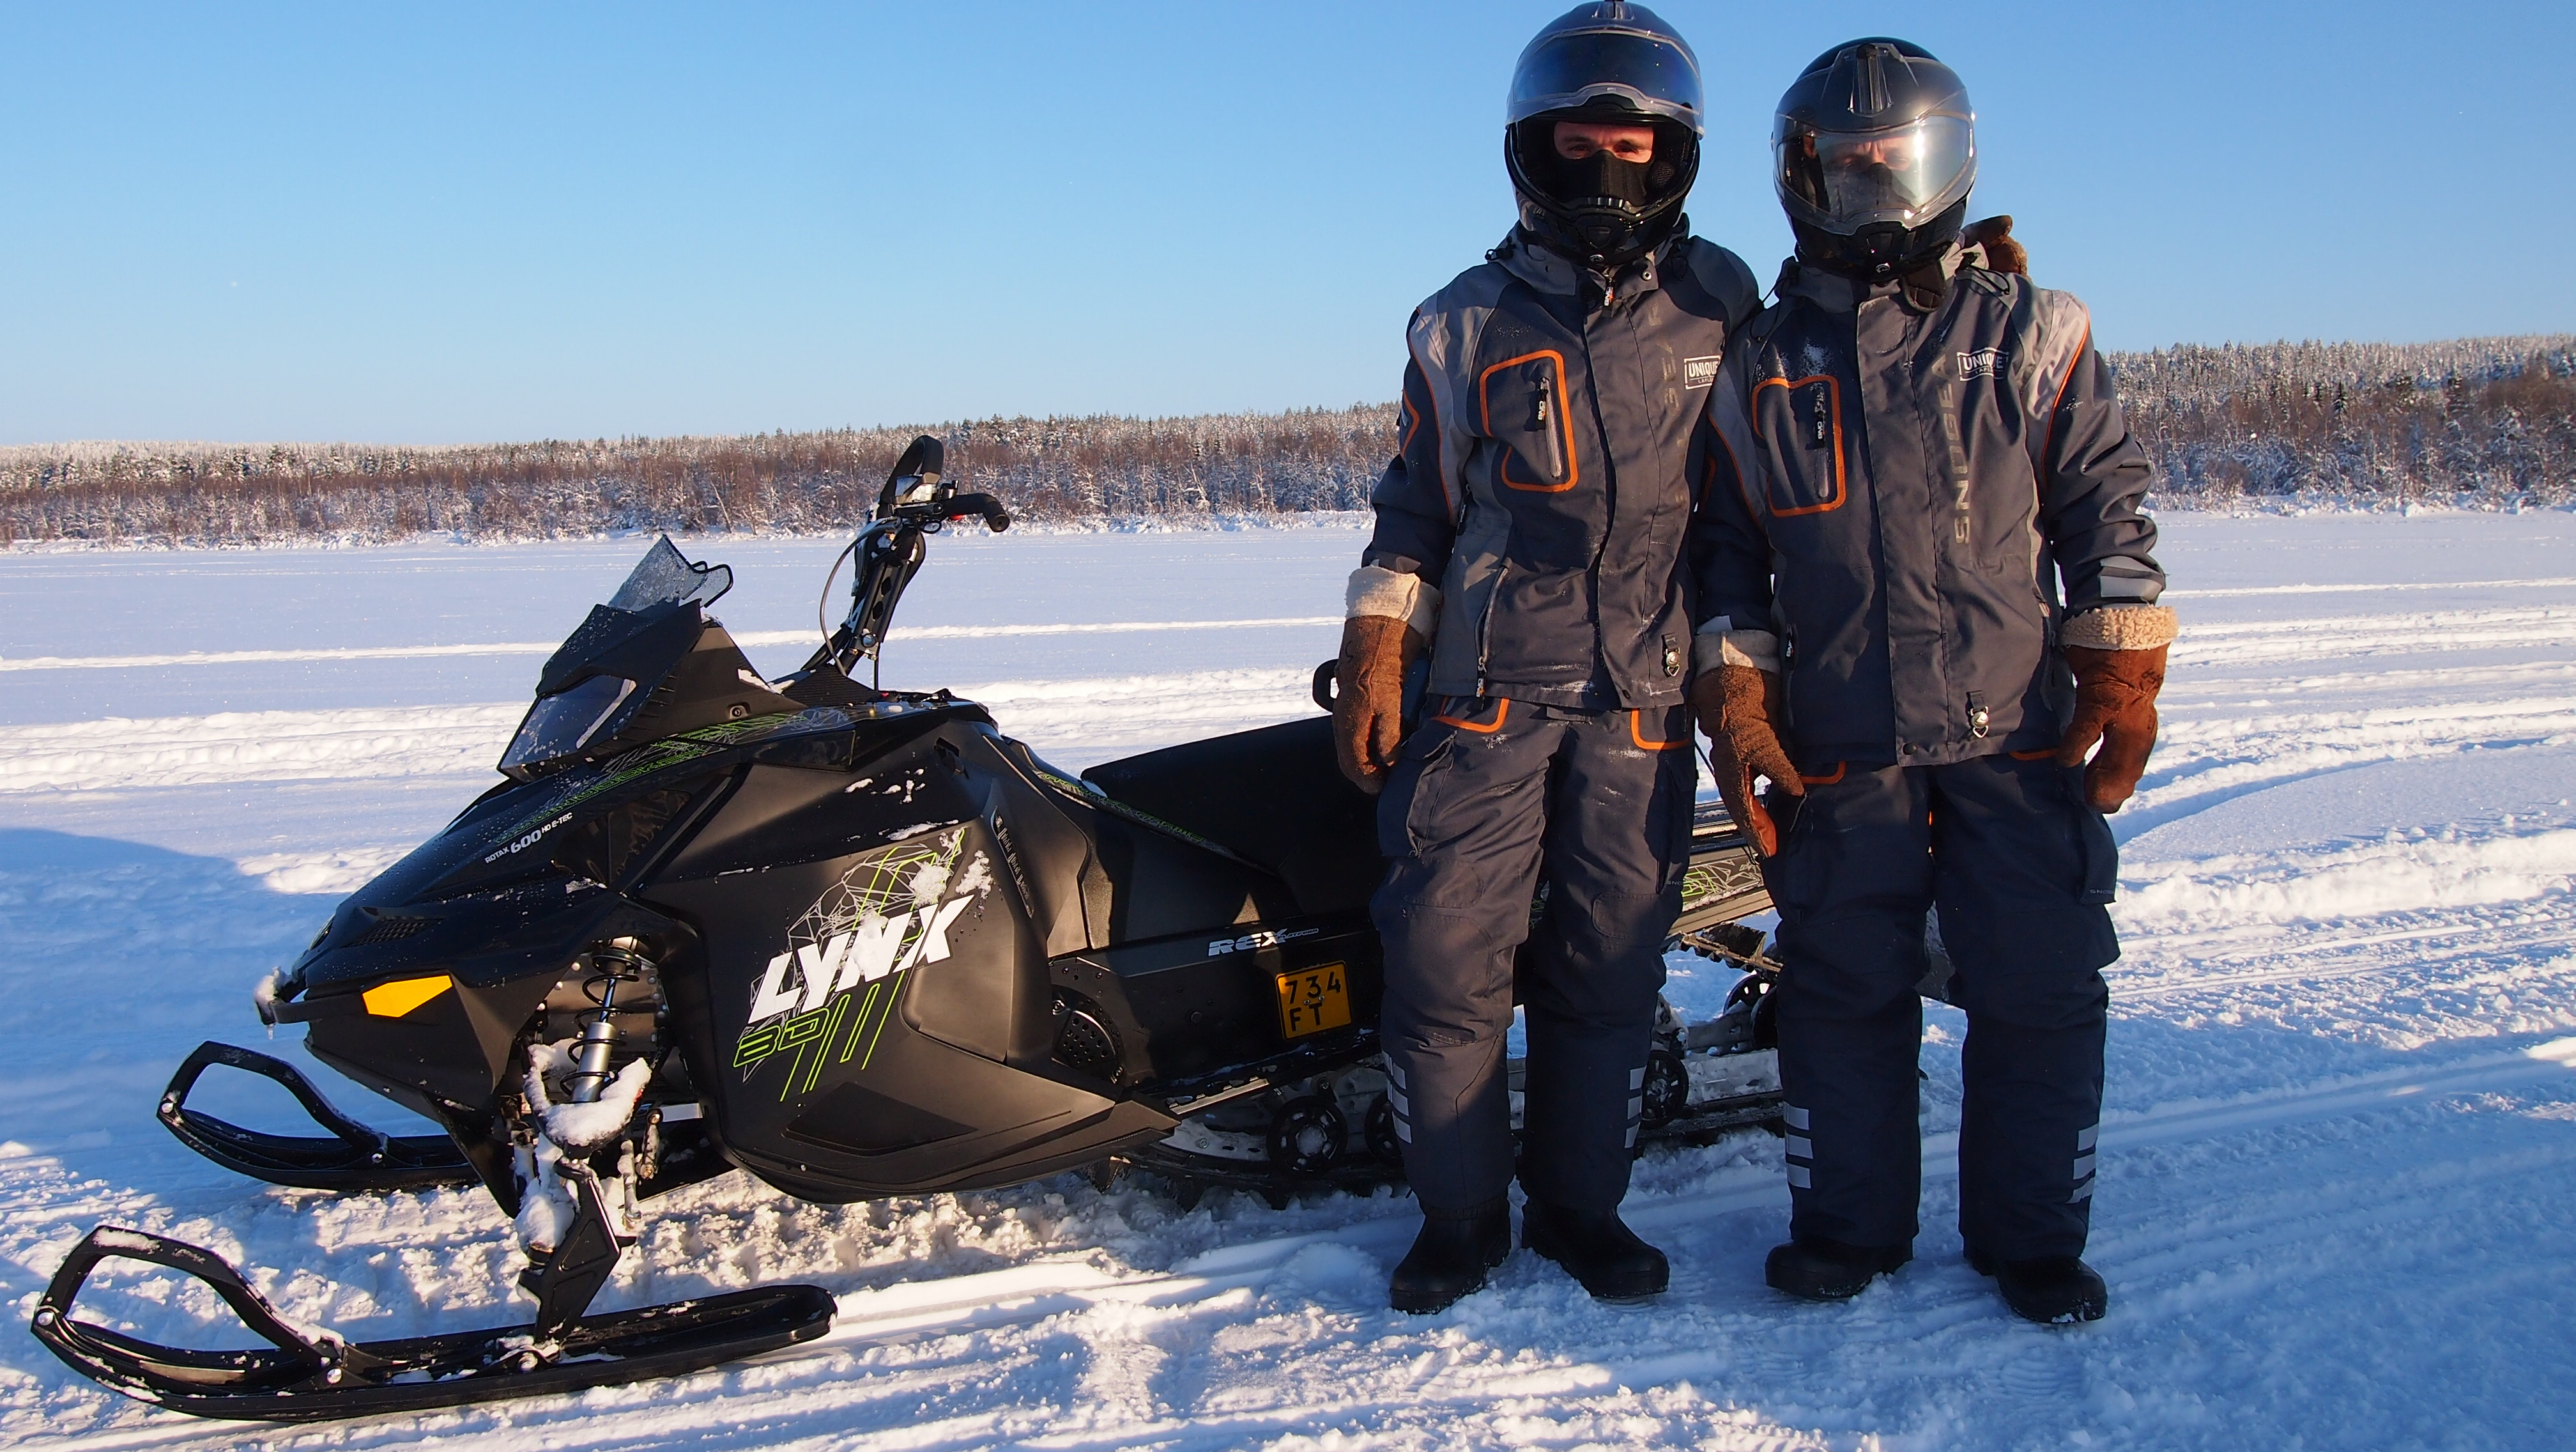 Snowmobile Safari To Reindeer Farm